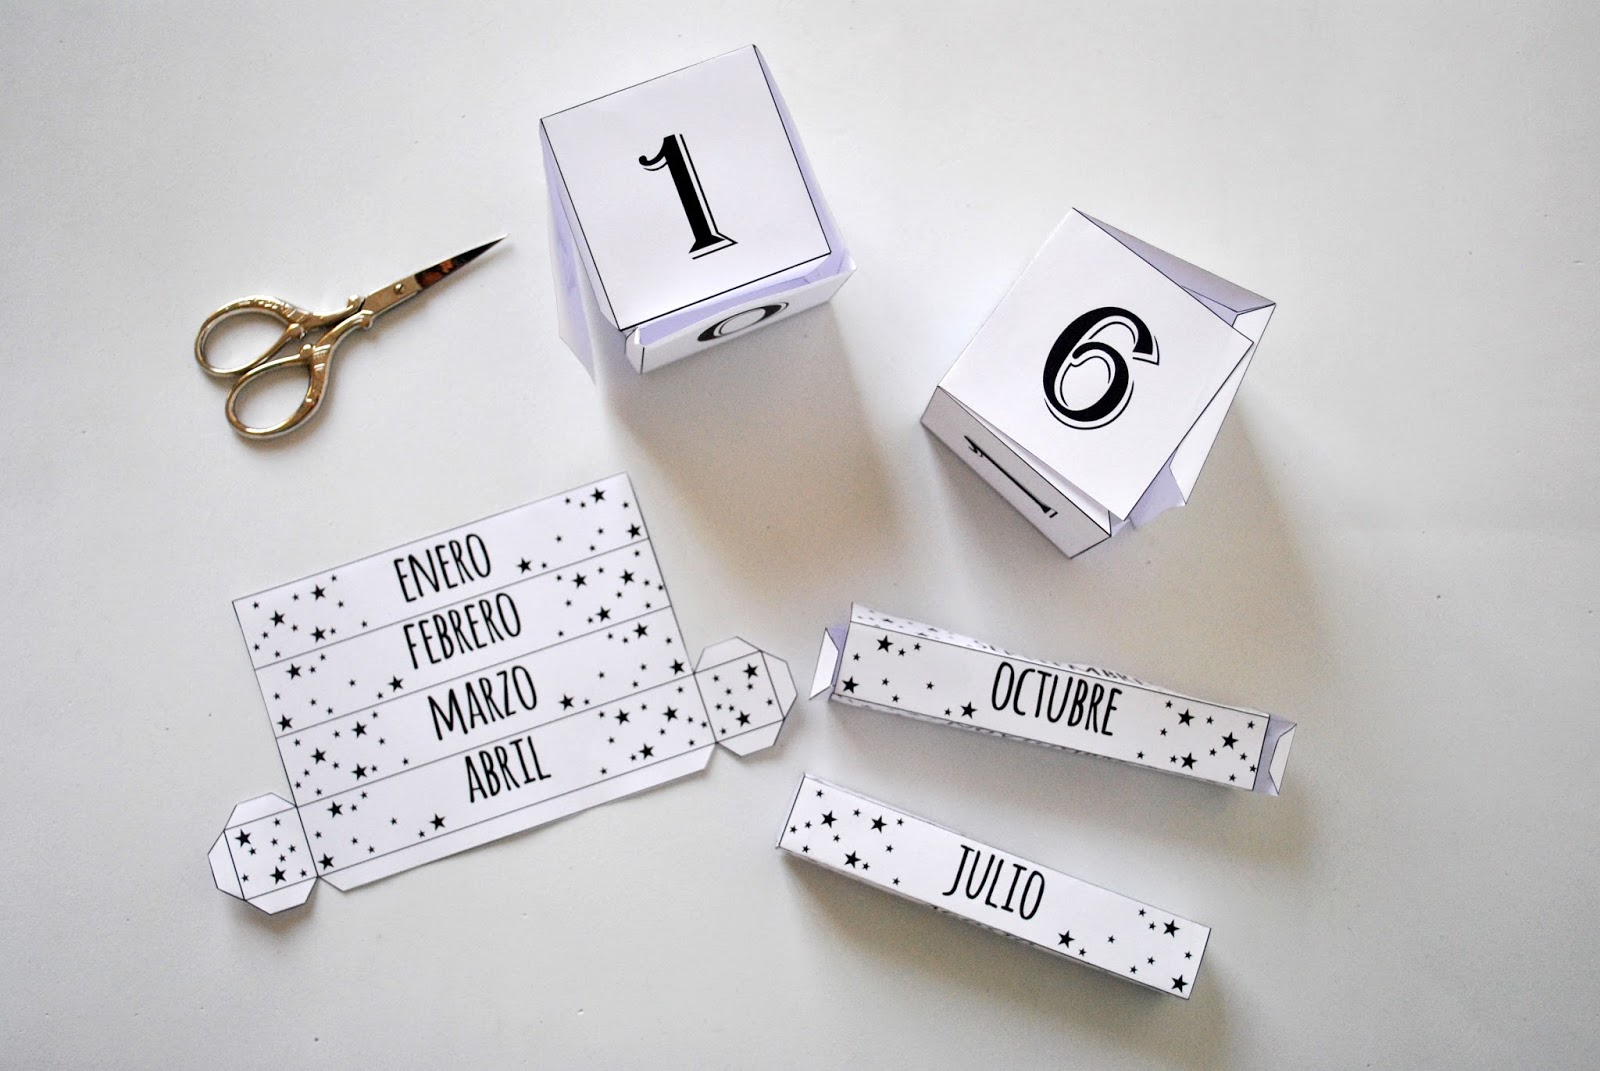 DIY Tutorial Calendario Perpetuo (con descargable)